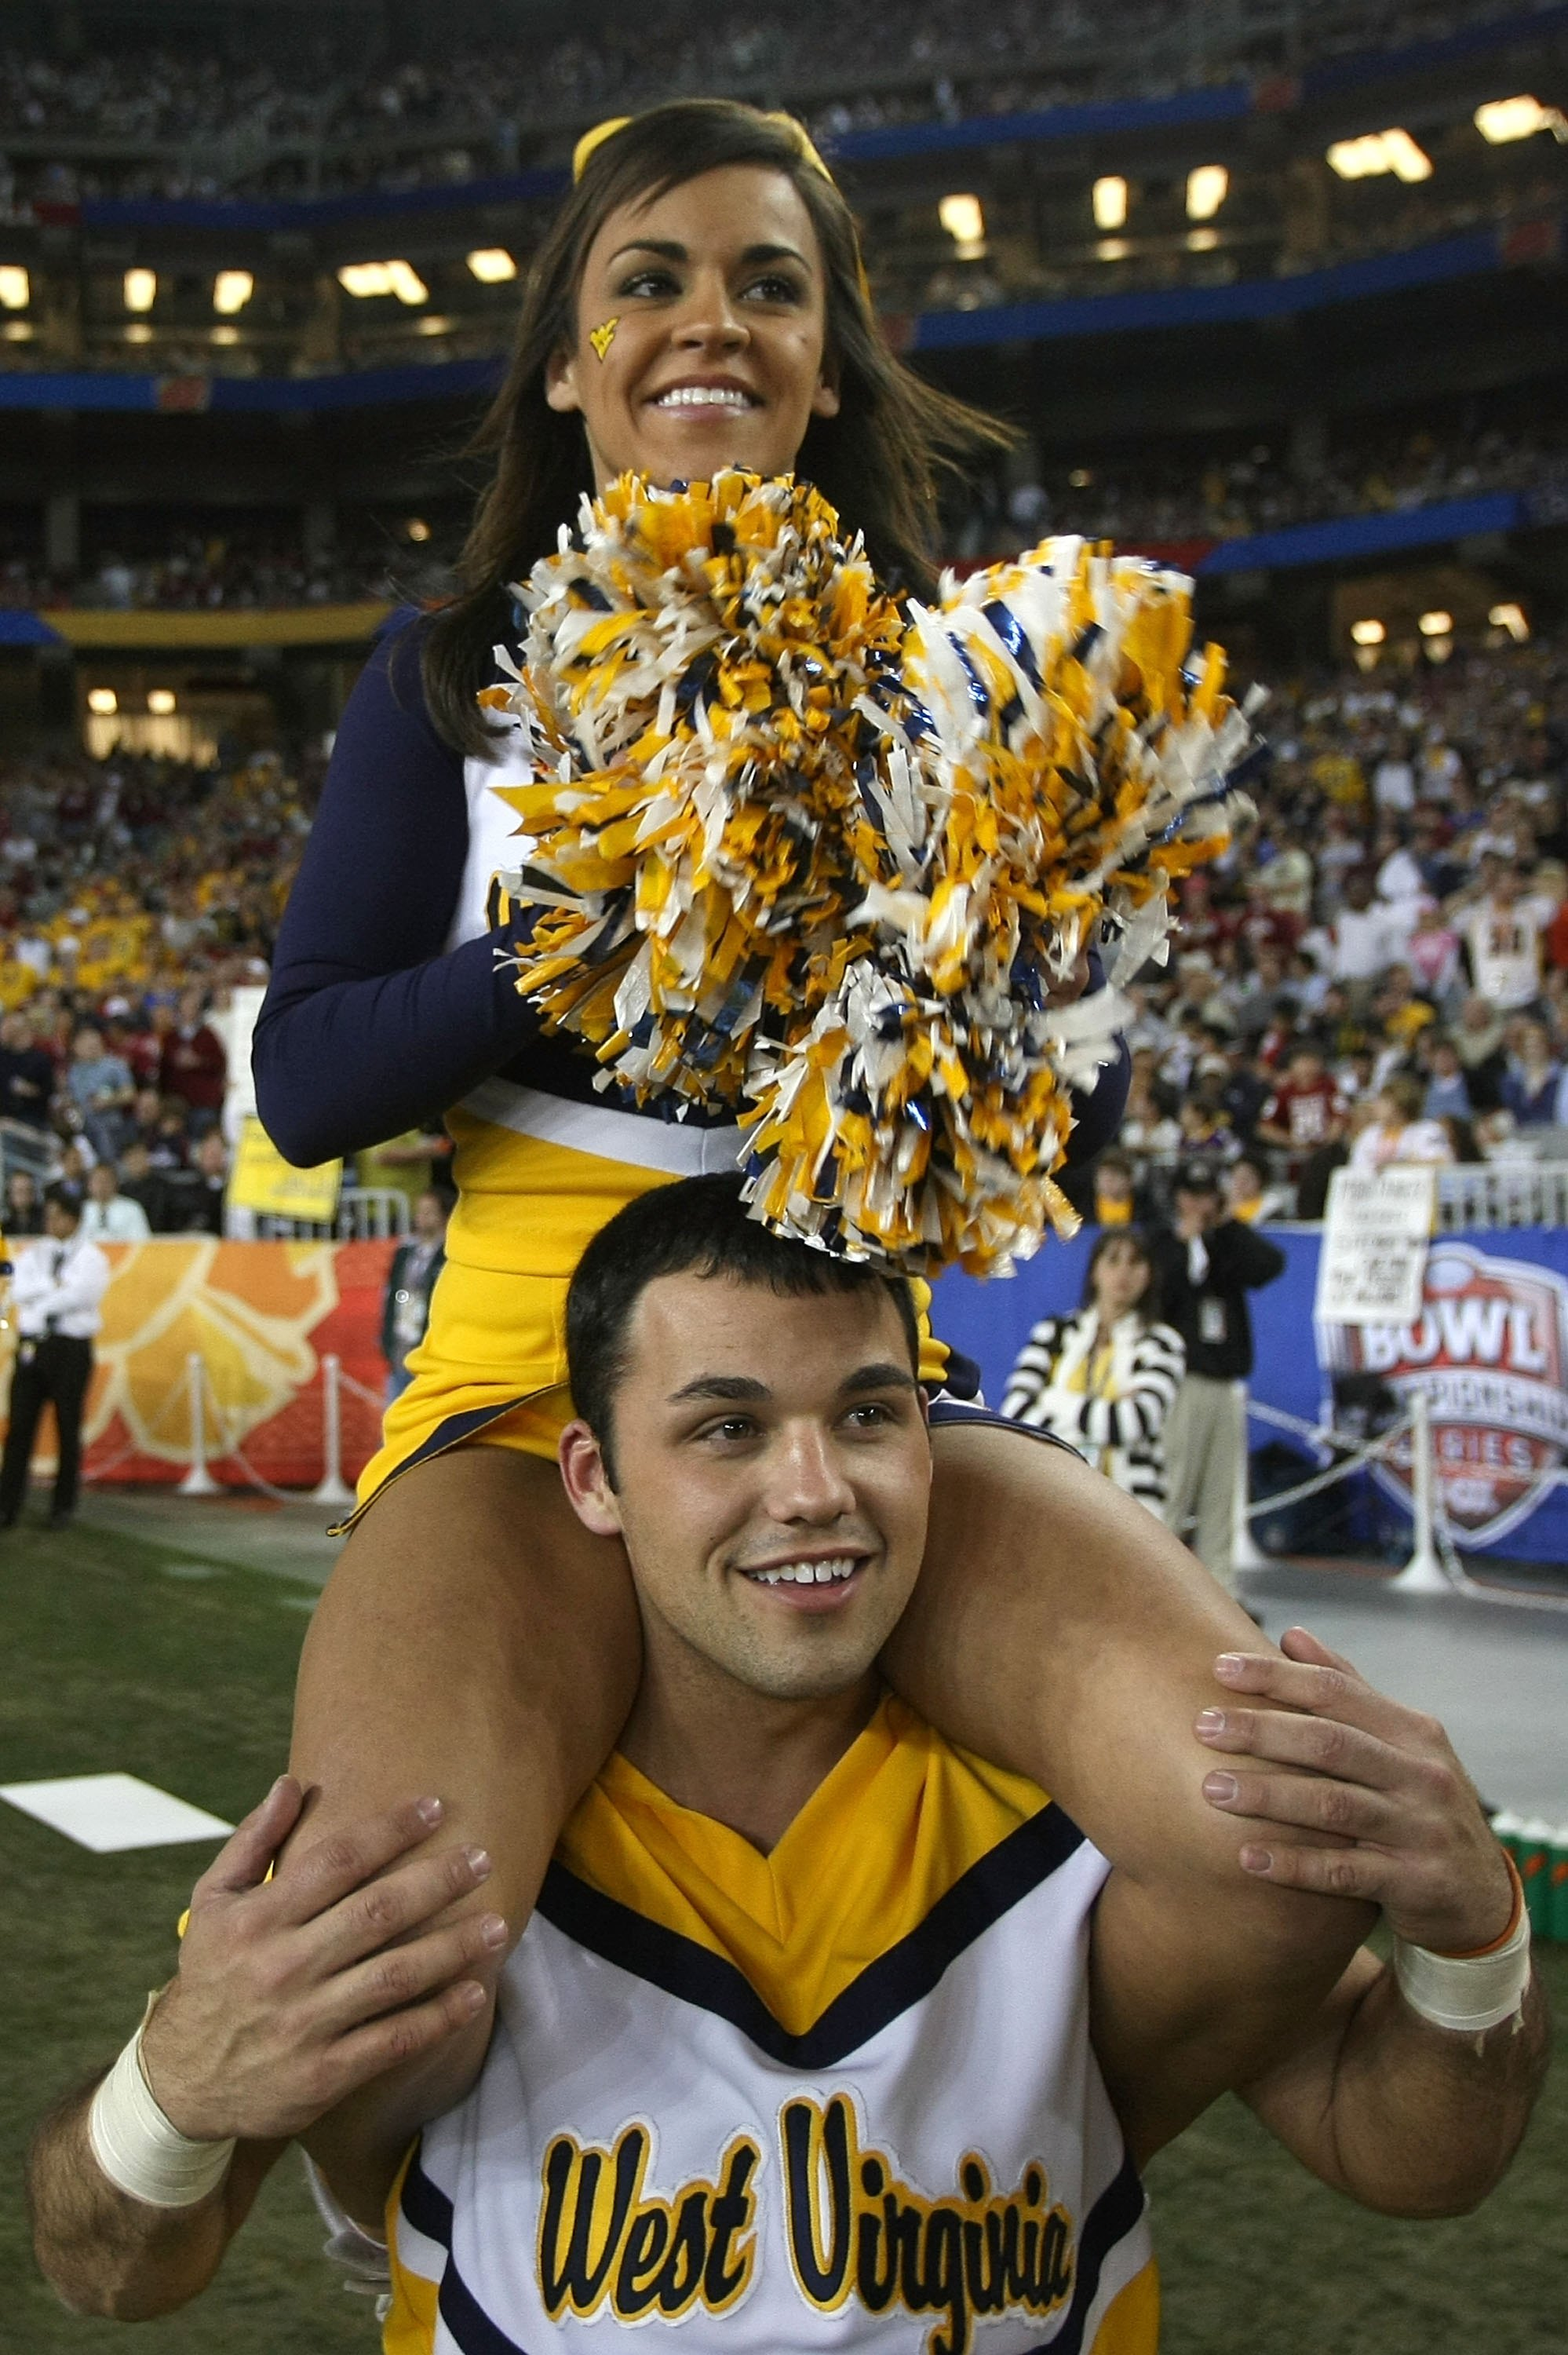 GLENDALE, AZ - JANUARY 02:  Two West Virginia Mountaineers cheerleaders roam the sideline while the Mountaineers take on the Oklahoma Sooners at the Tostito's Fiesta Bowl at University of Phoenix Stadium January 2, 2008 in Glendale, Arizona.  (Photo by St